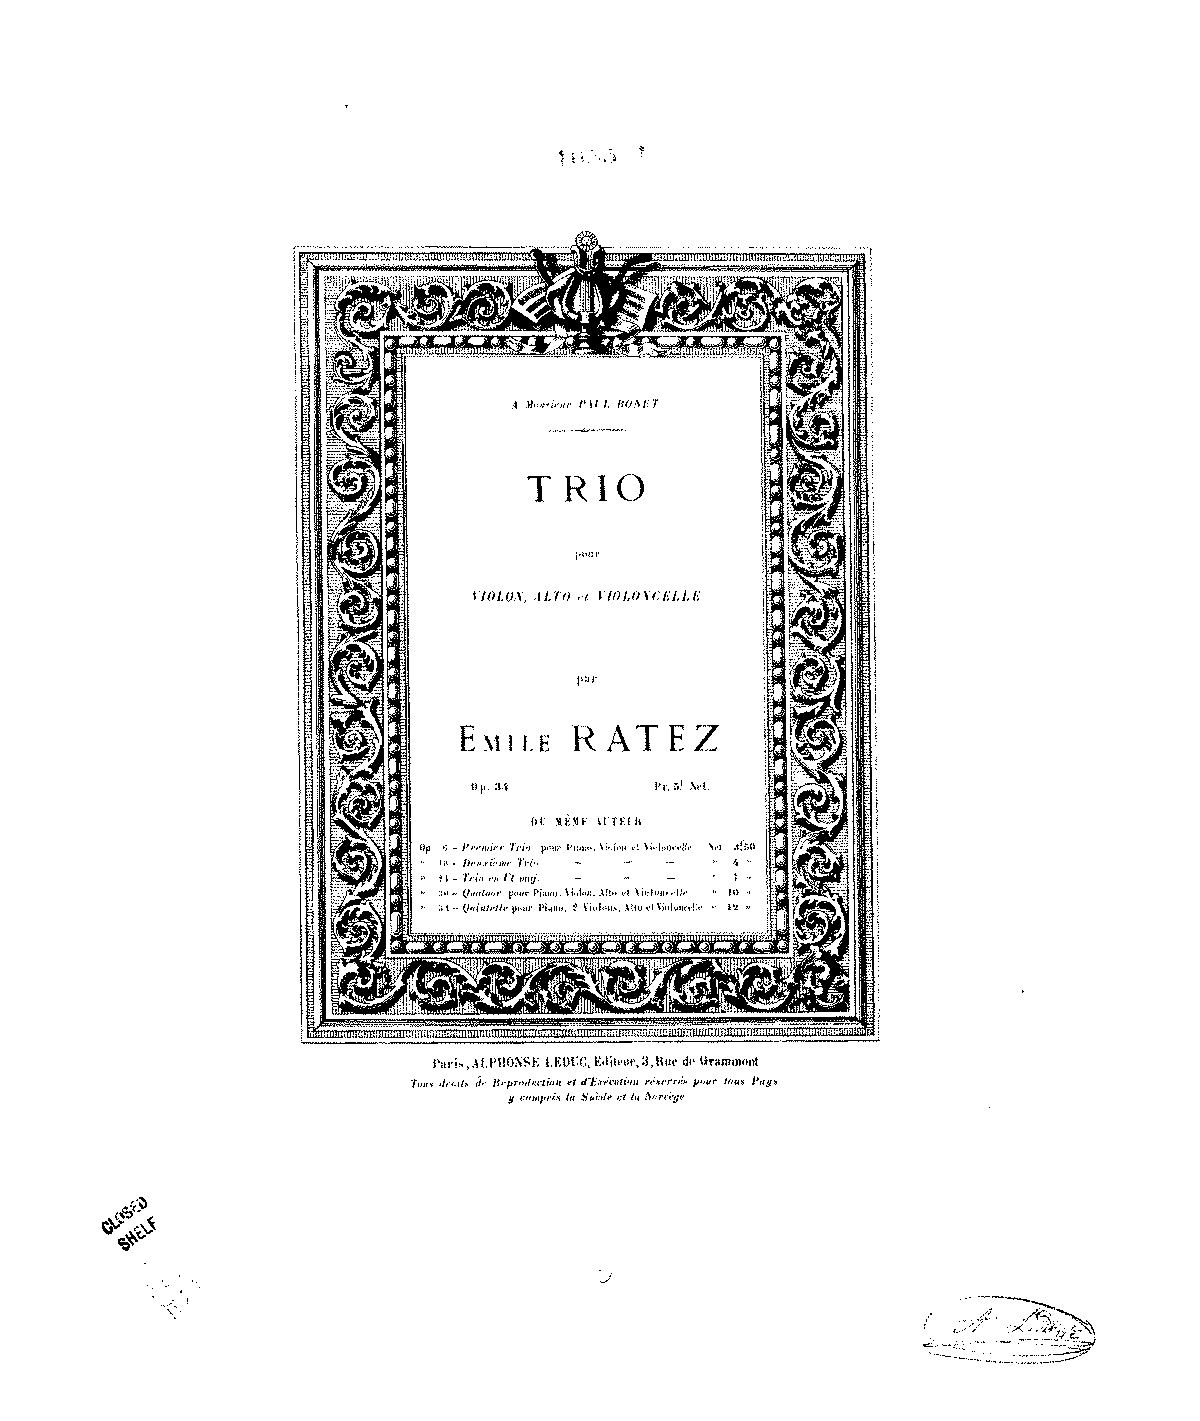 PMLP61347-Ratez - Trio for Violin Viola and Cello Op34 violin.pdf